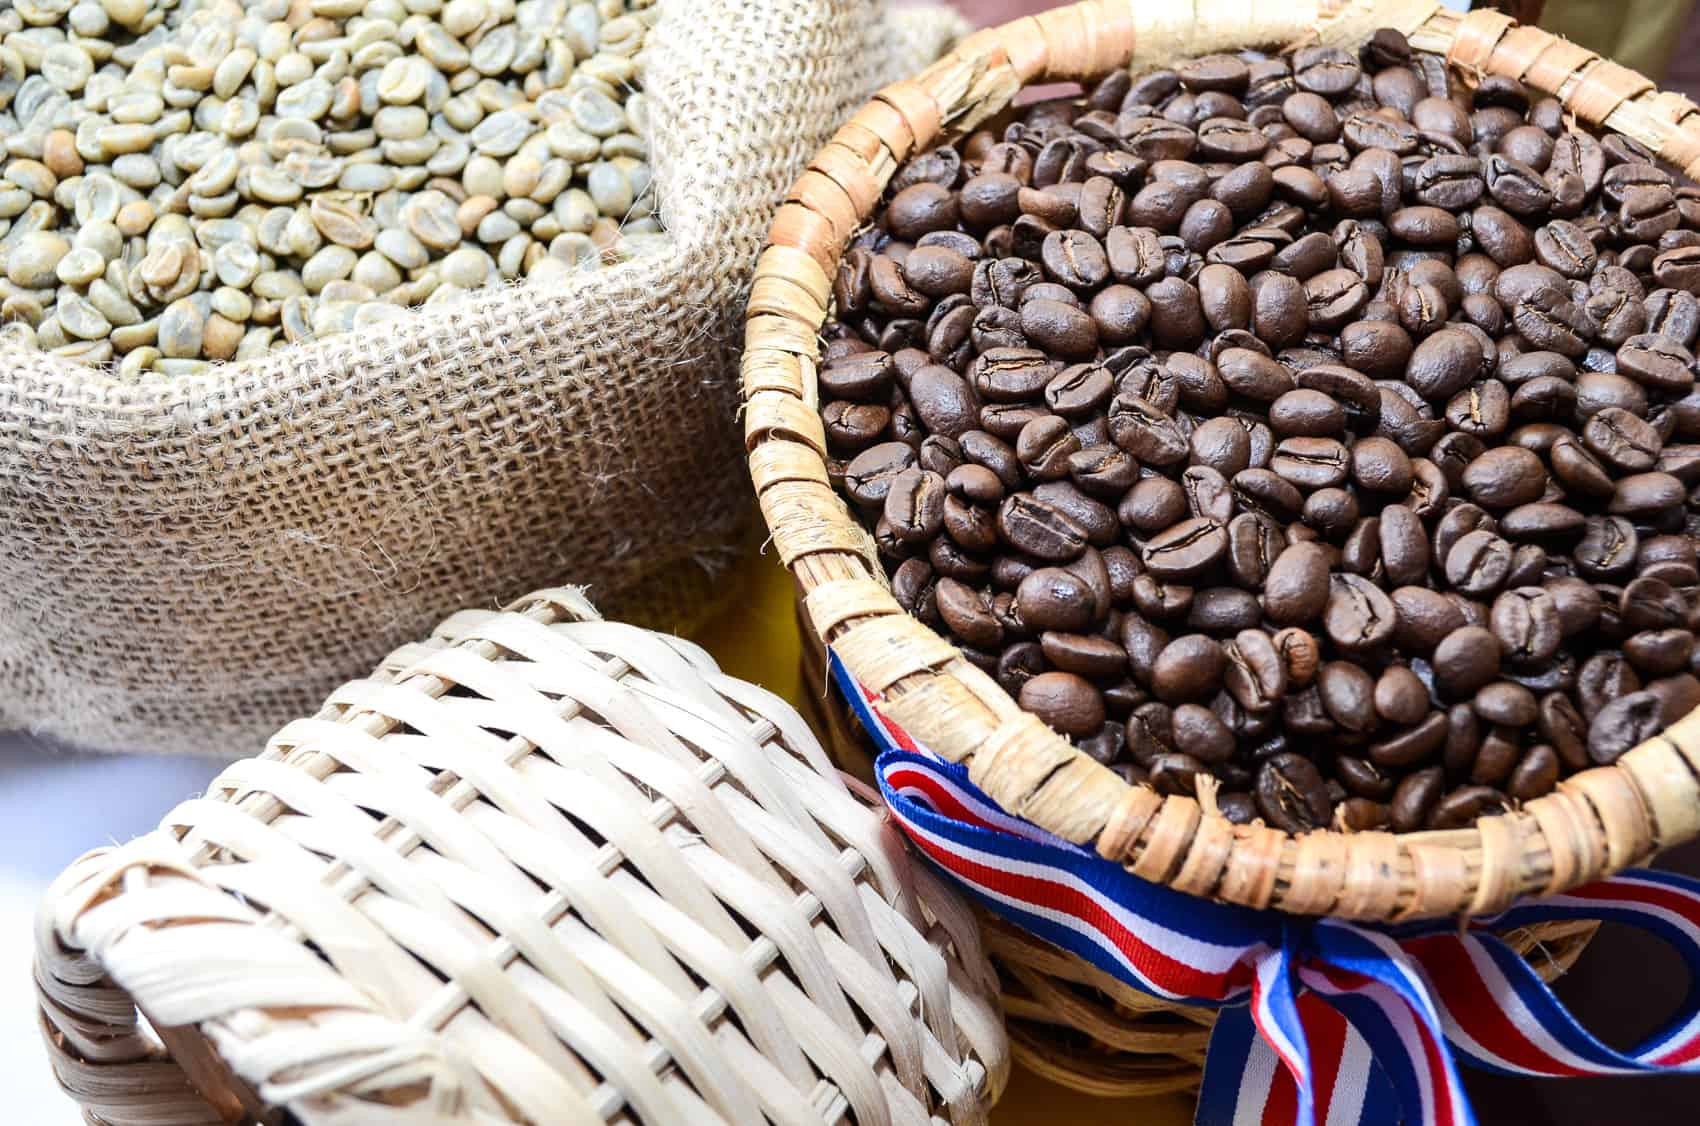 A basket of roasted coffee.